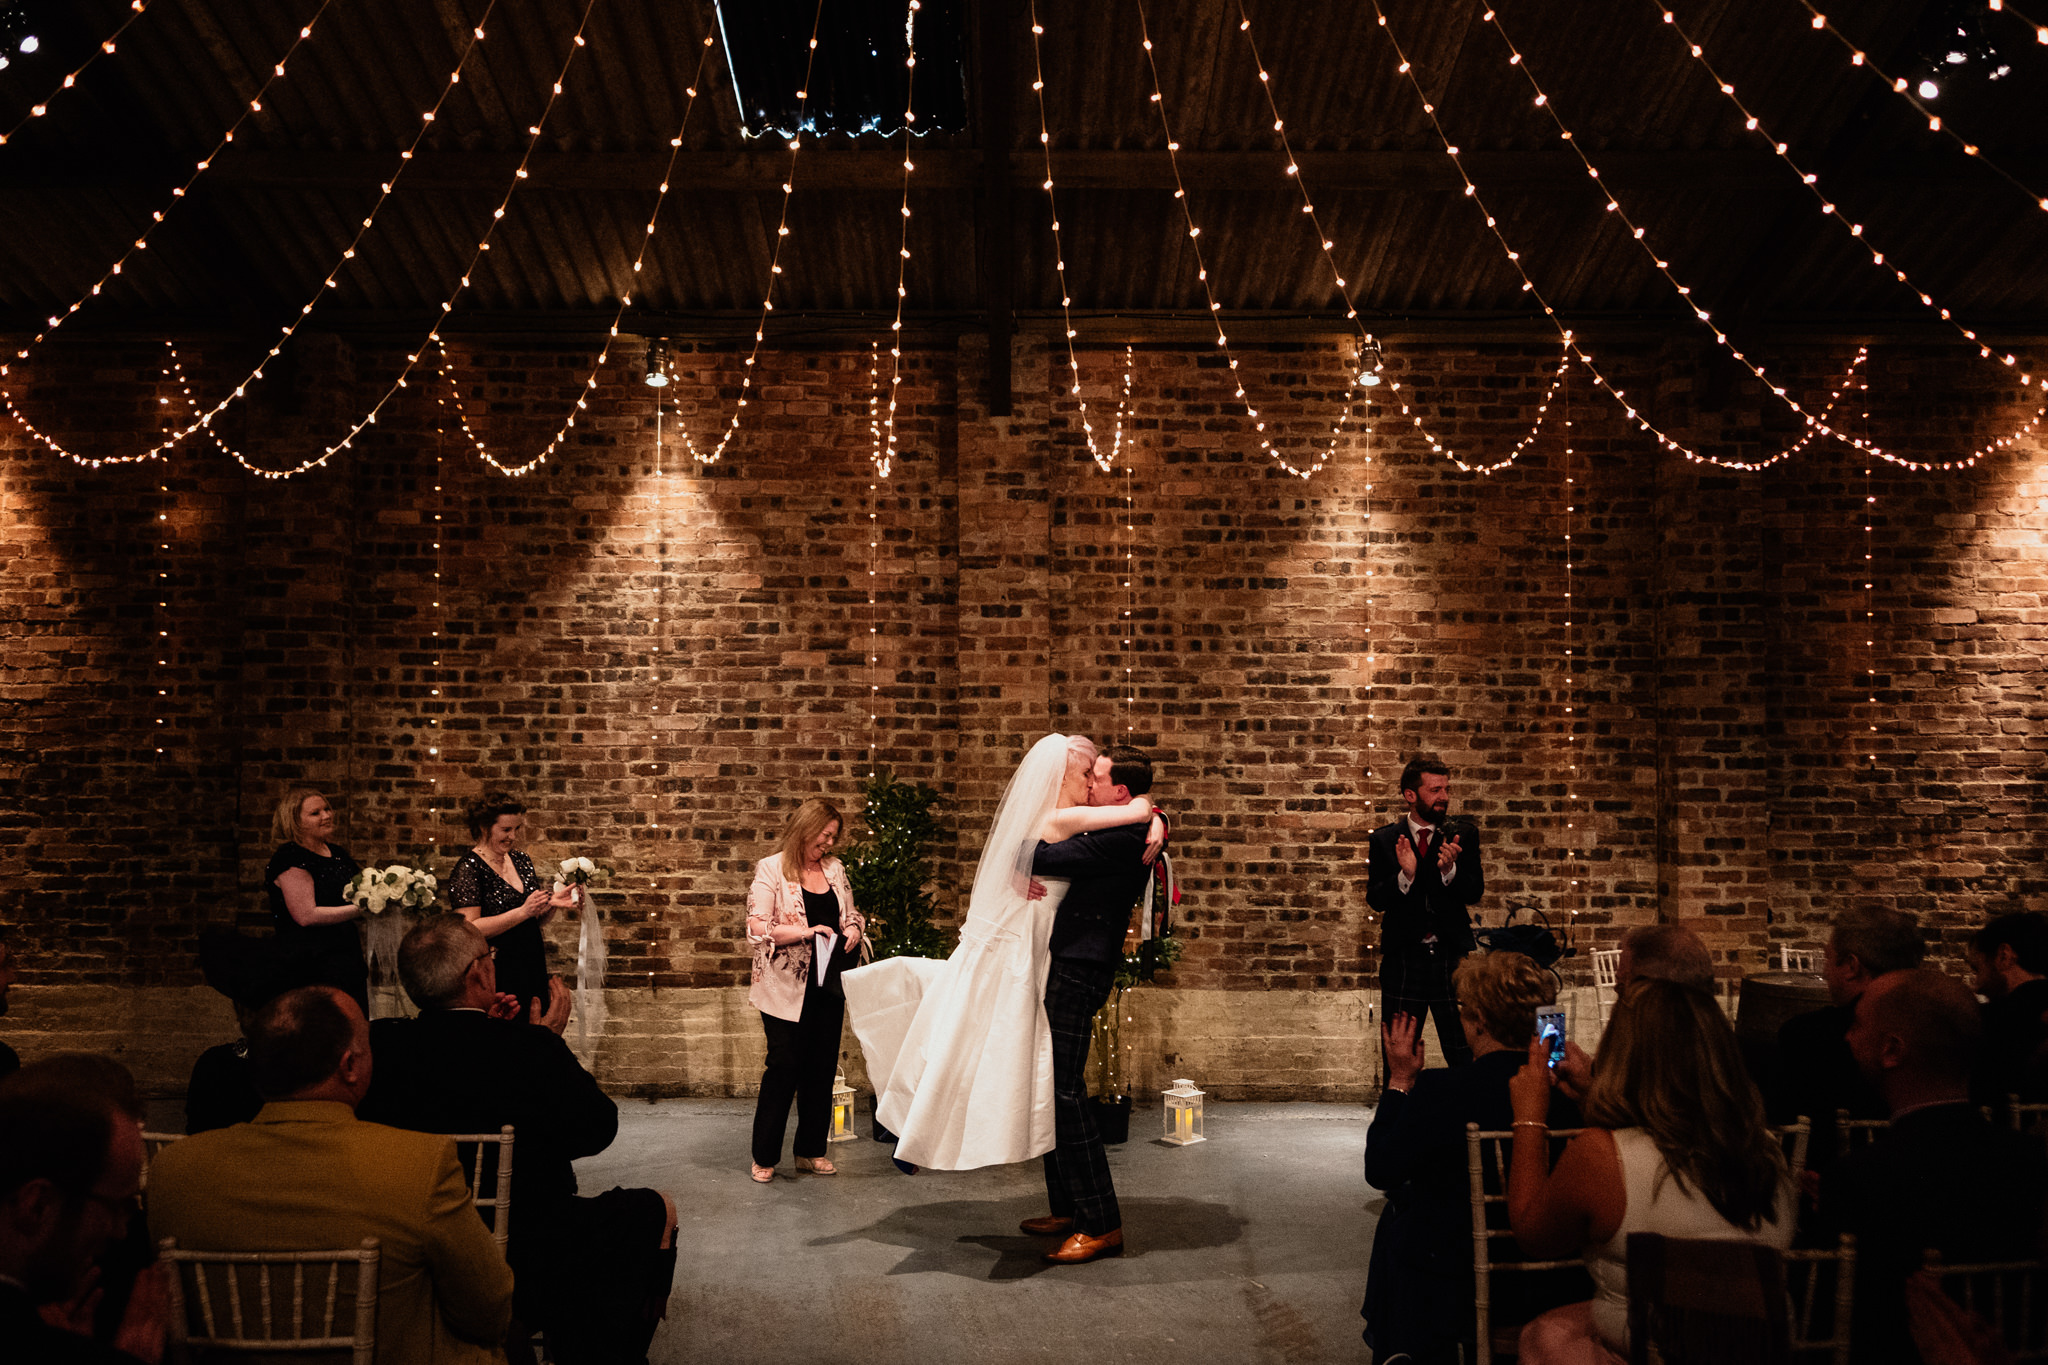 Fun Family Barn Wedding - Kinkell Byre_014.jpg